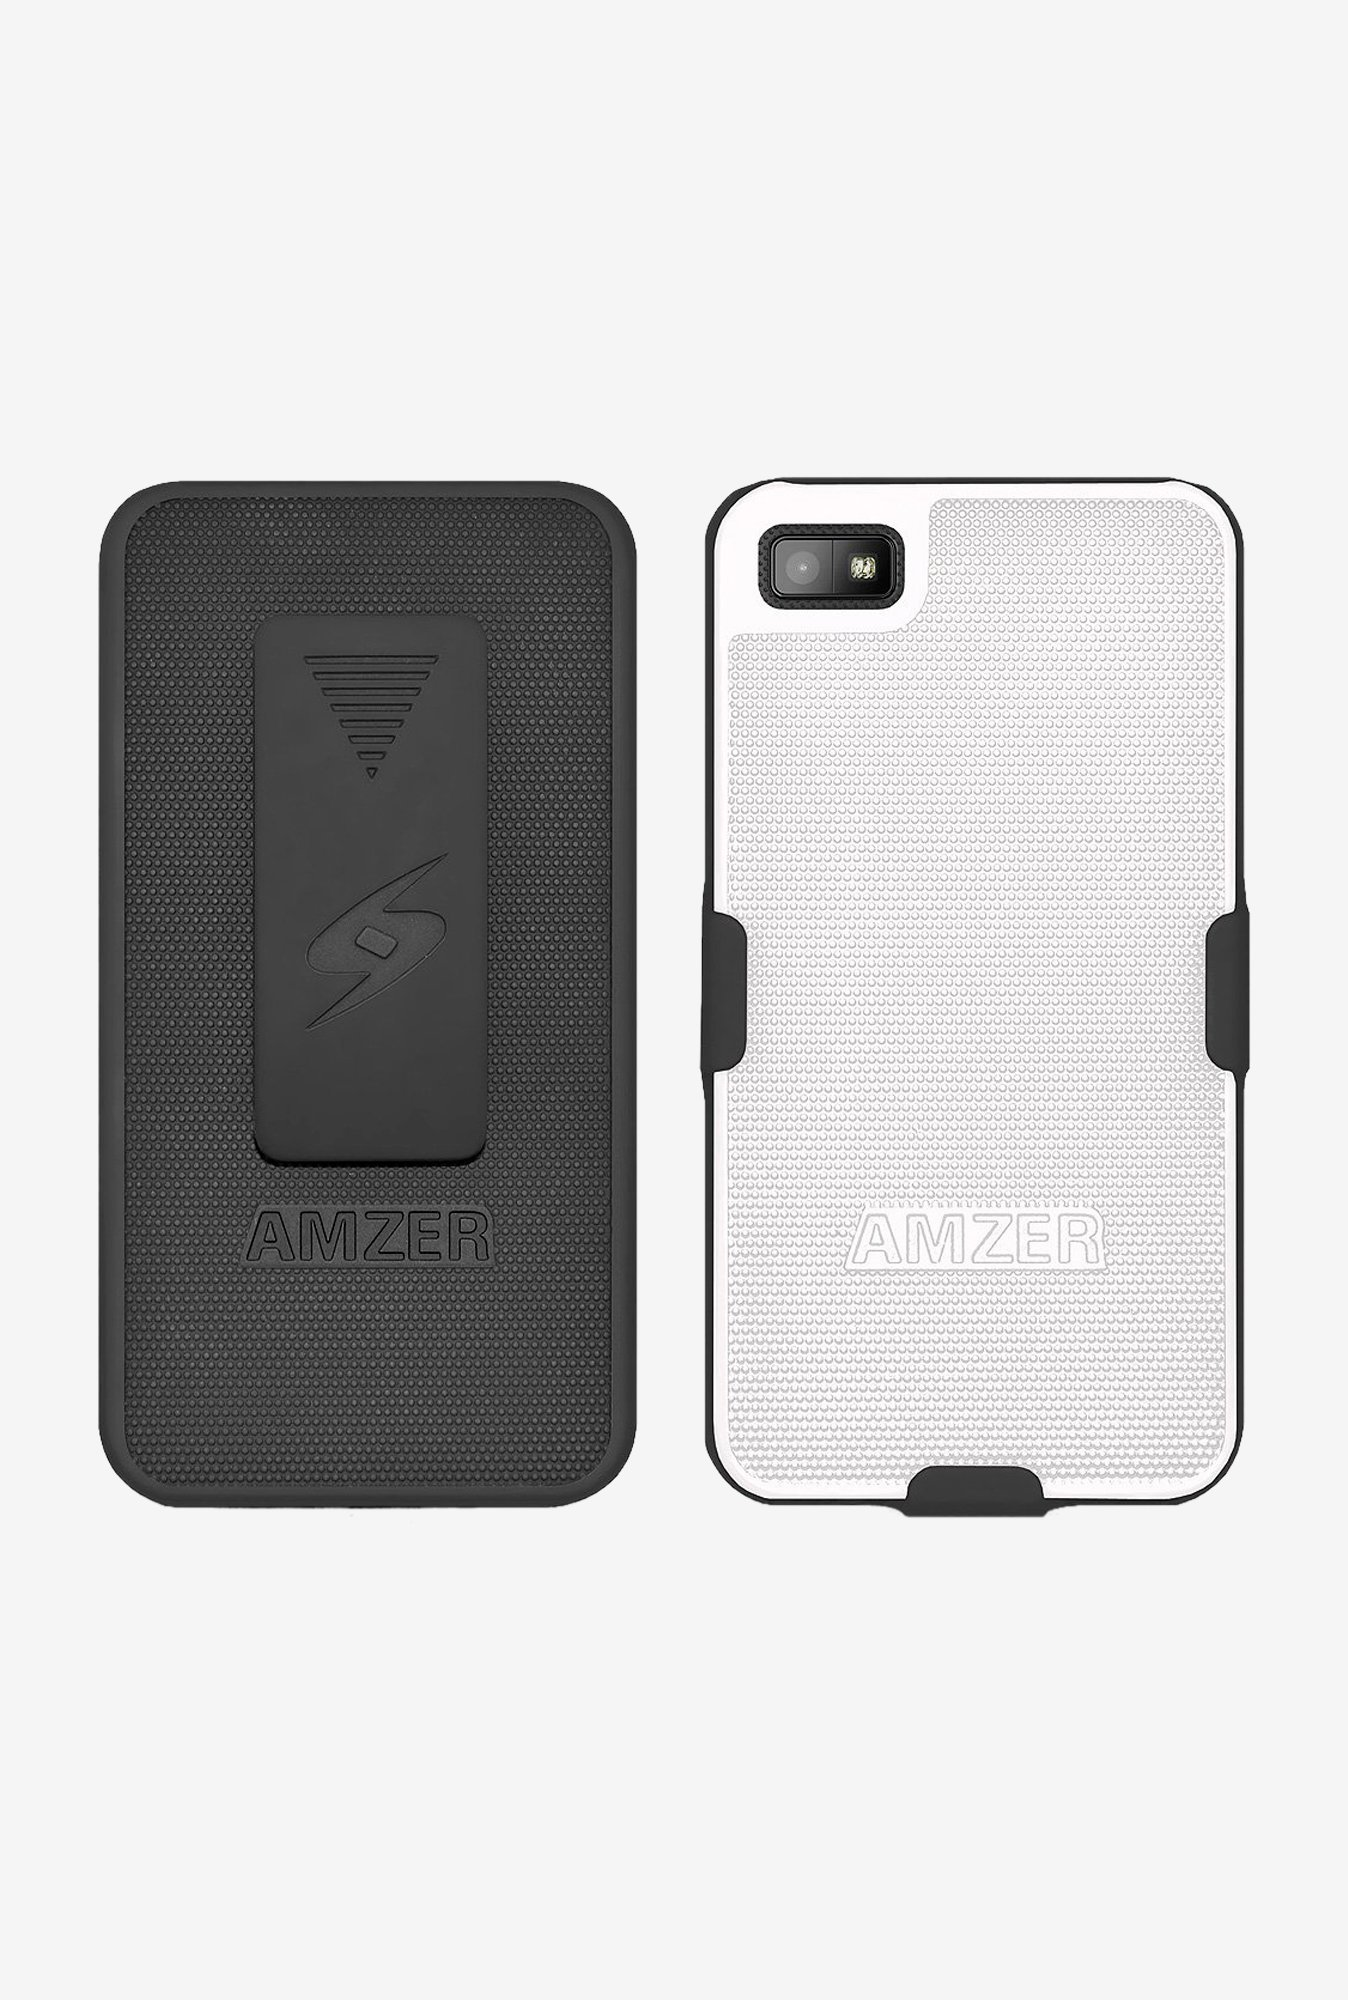 Amzer Shellster Shell Case Black & White for BlackBerry Z10